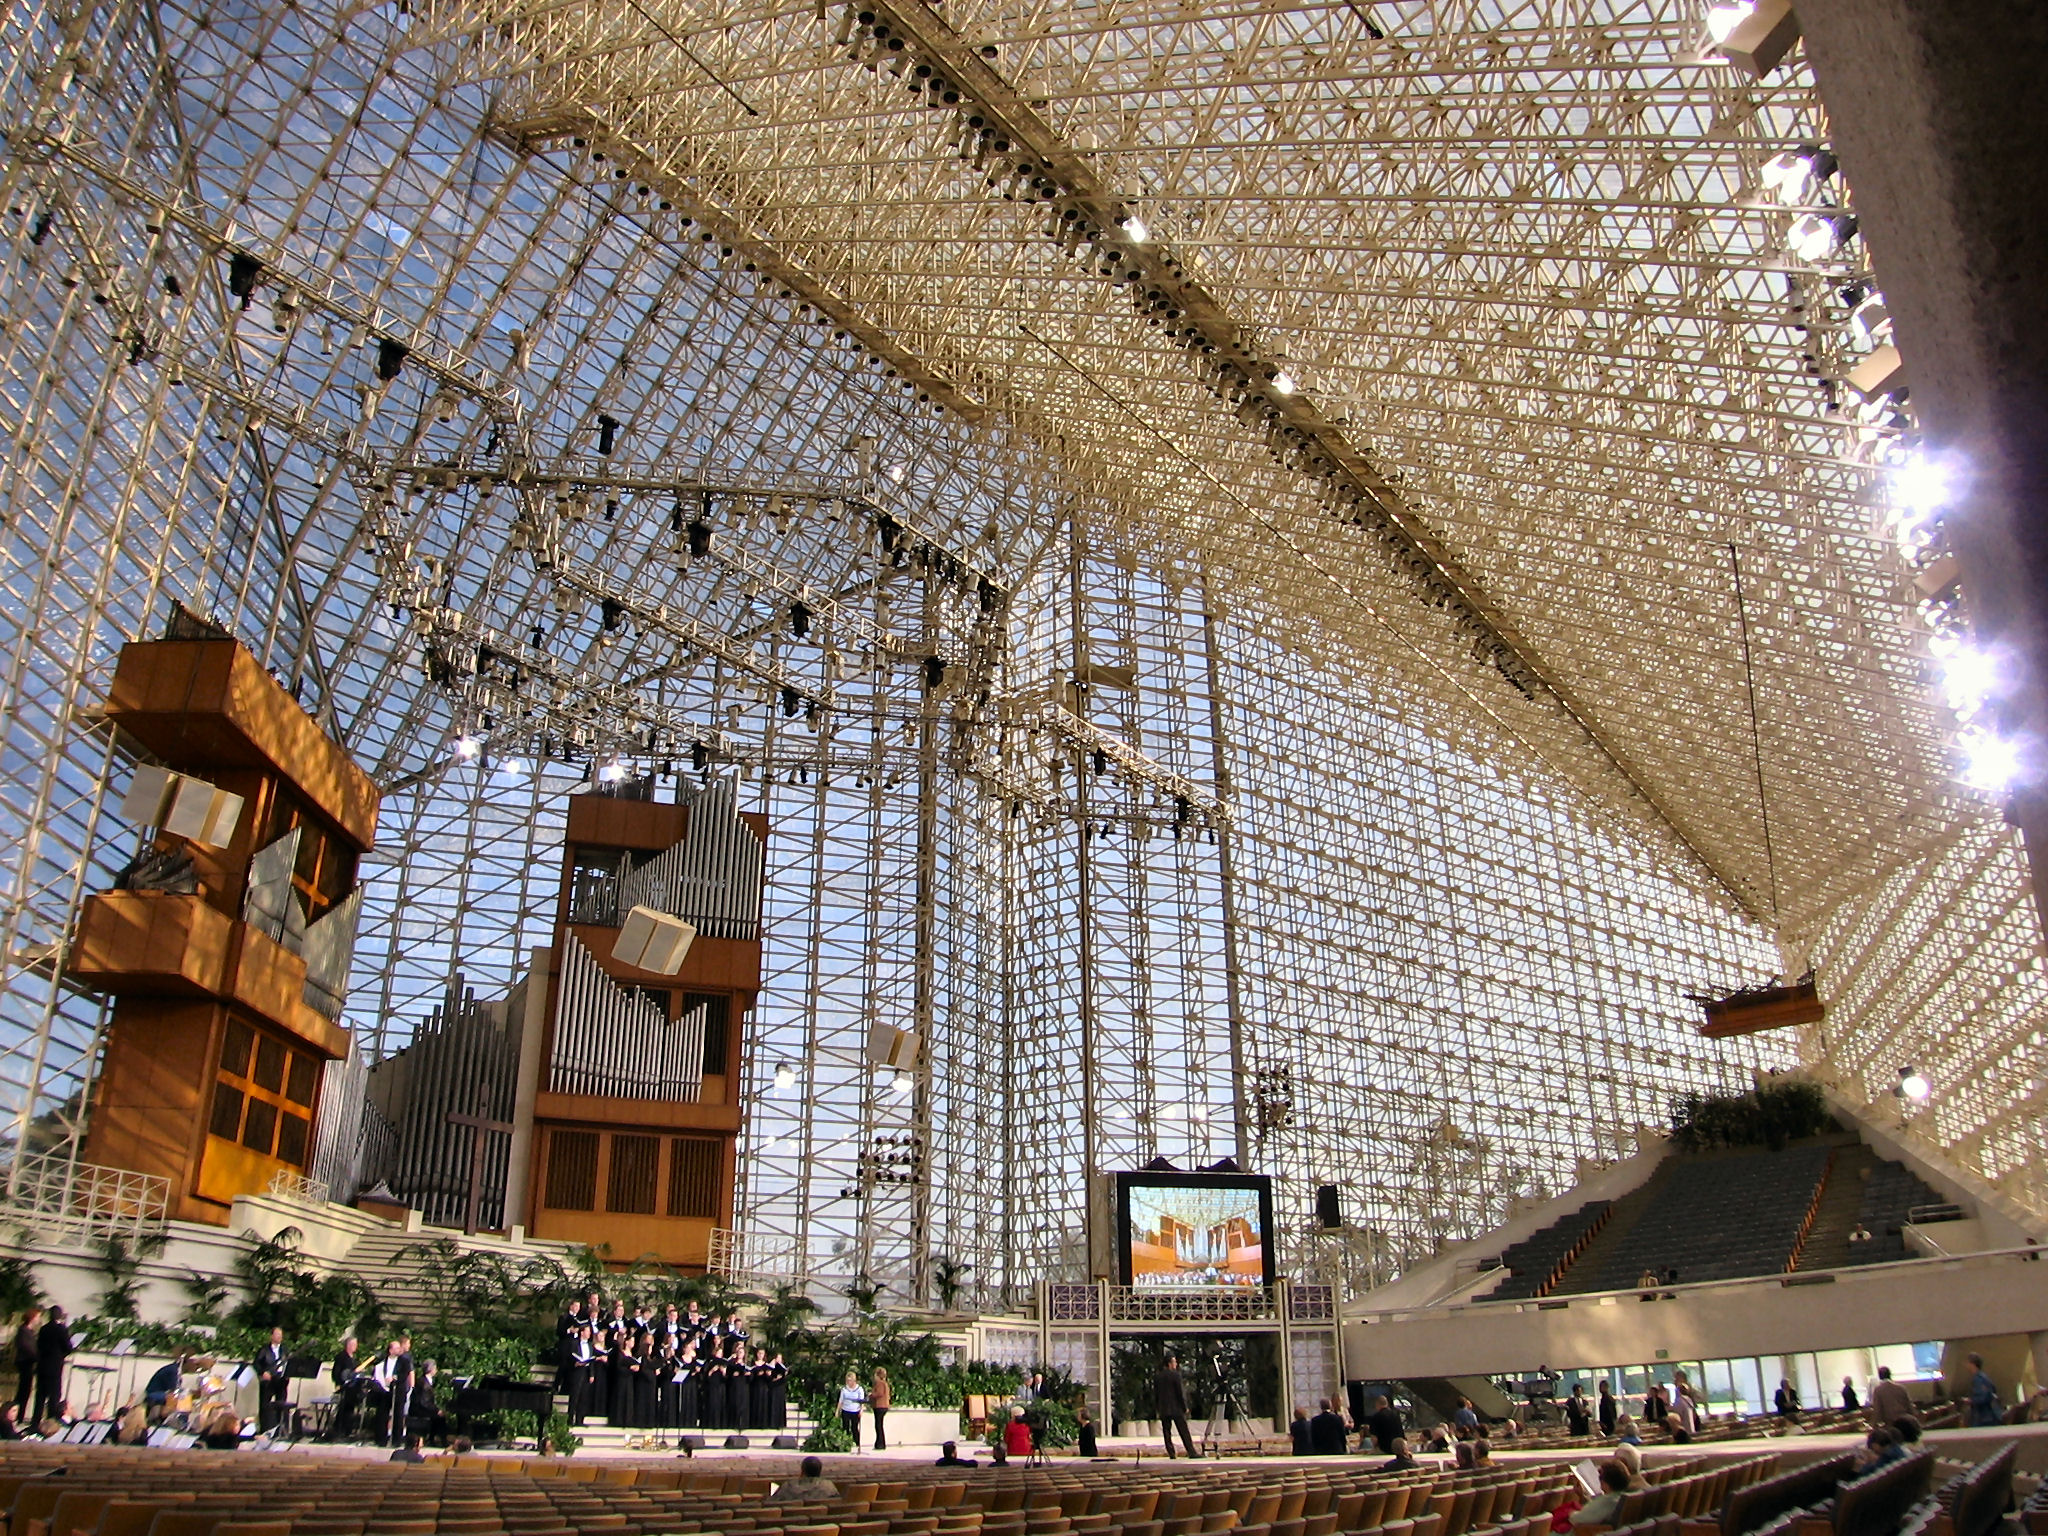 https://i1.wp.com/upload.wikimedia.org/wikipedia/commons/5/56/CrystalCathedral.jpg